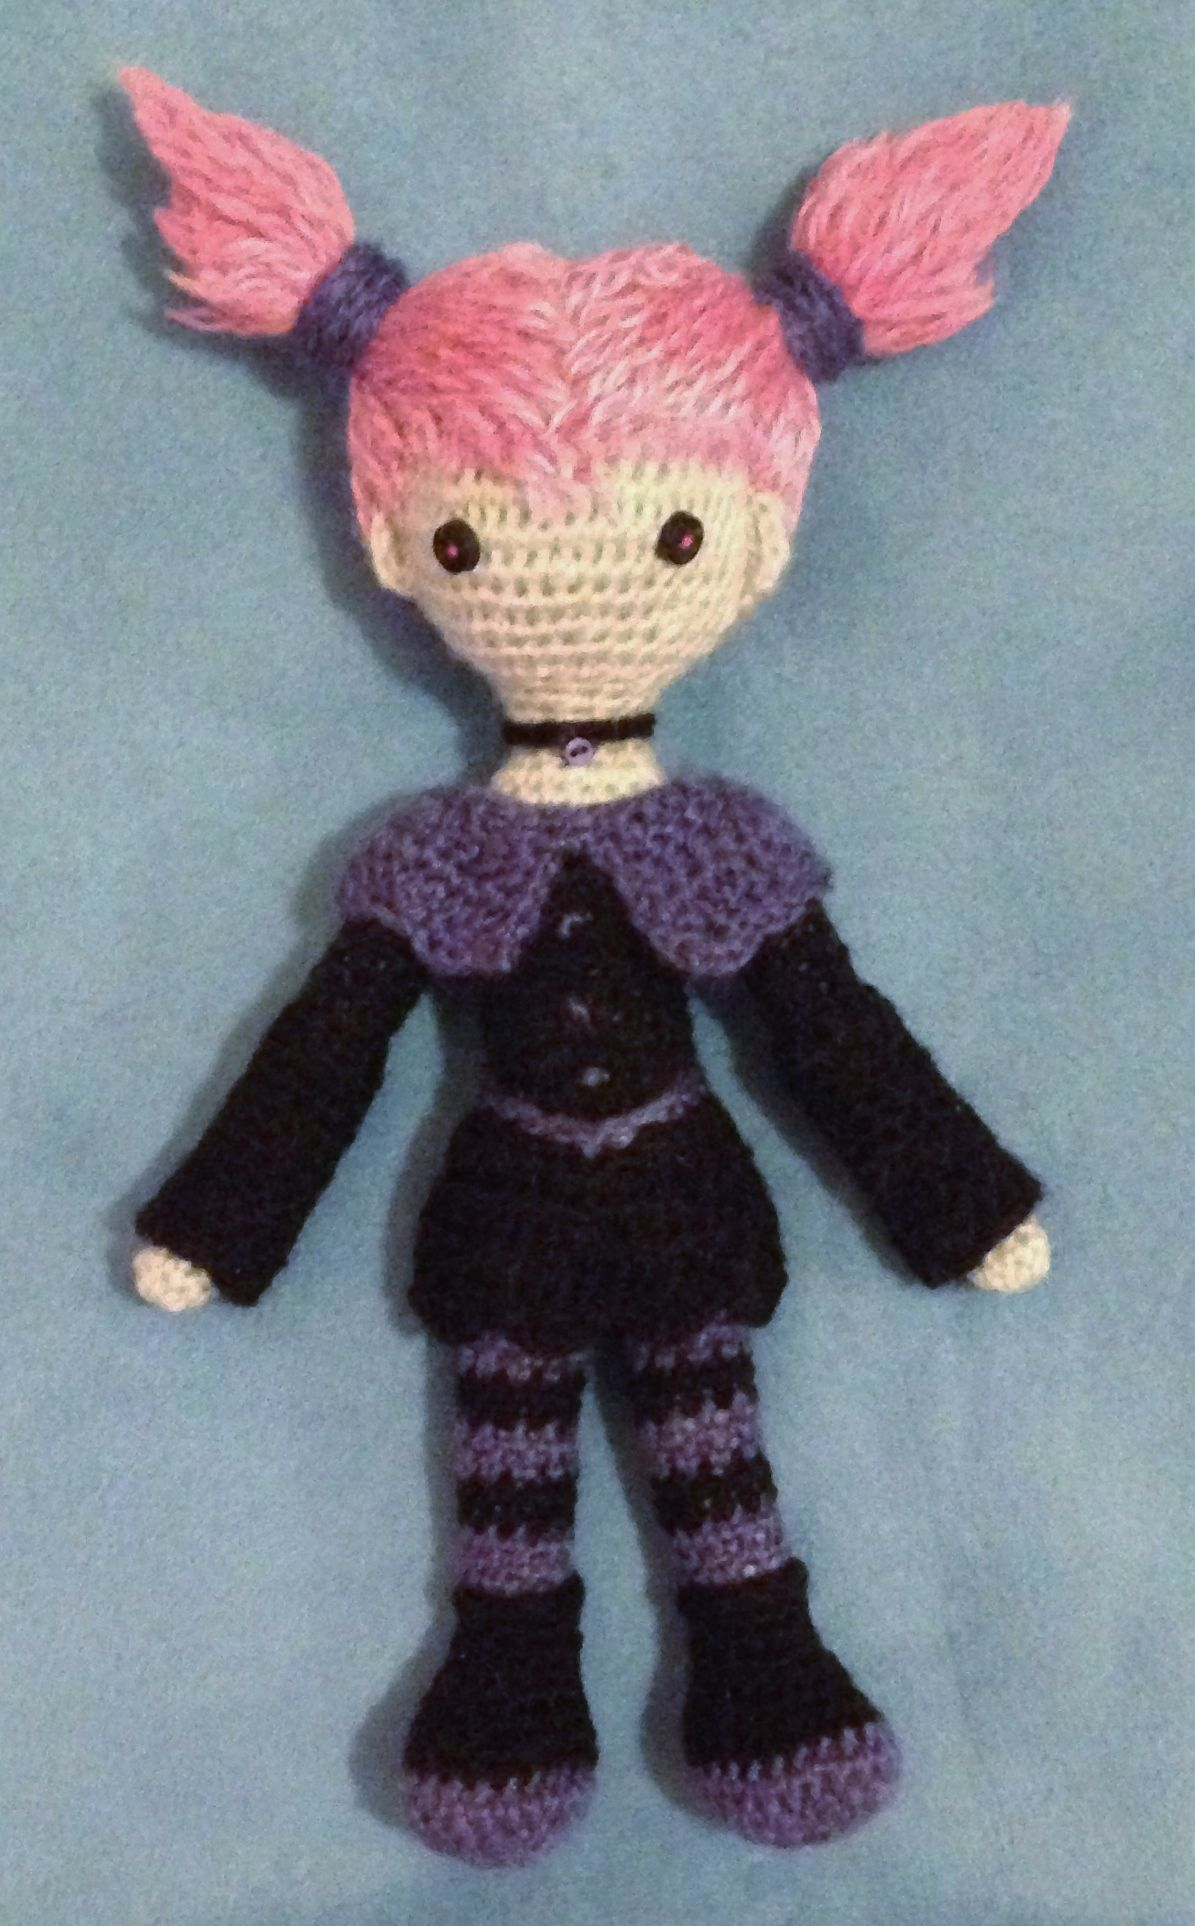 Teen Titans amigurumi - Jinx | Cool Crafts | Pinterest